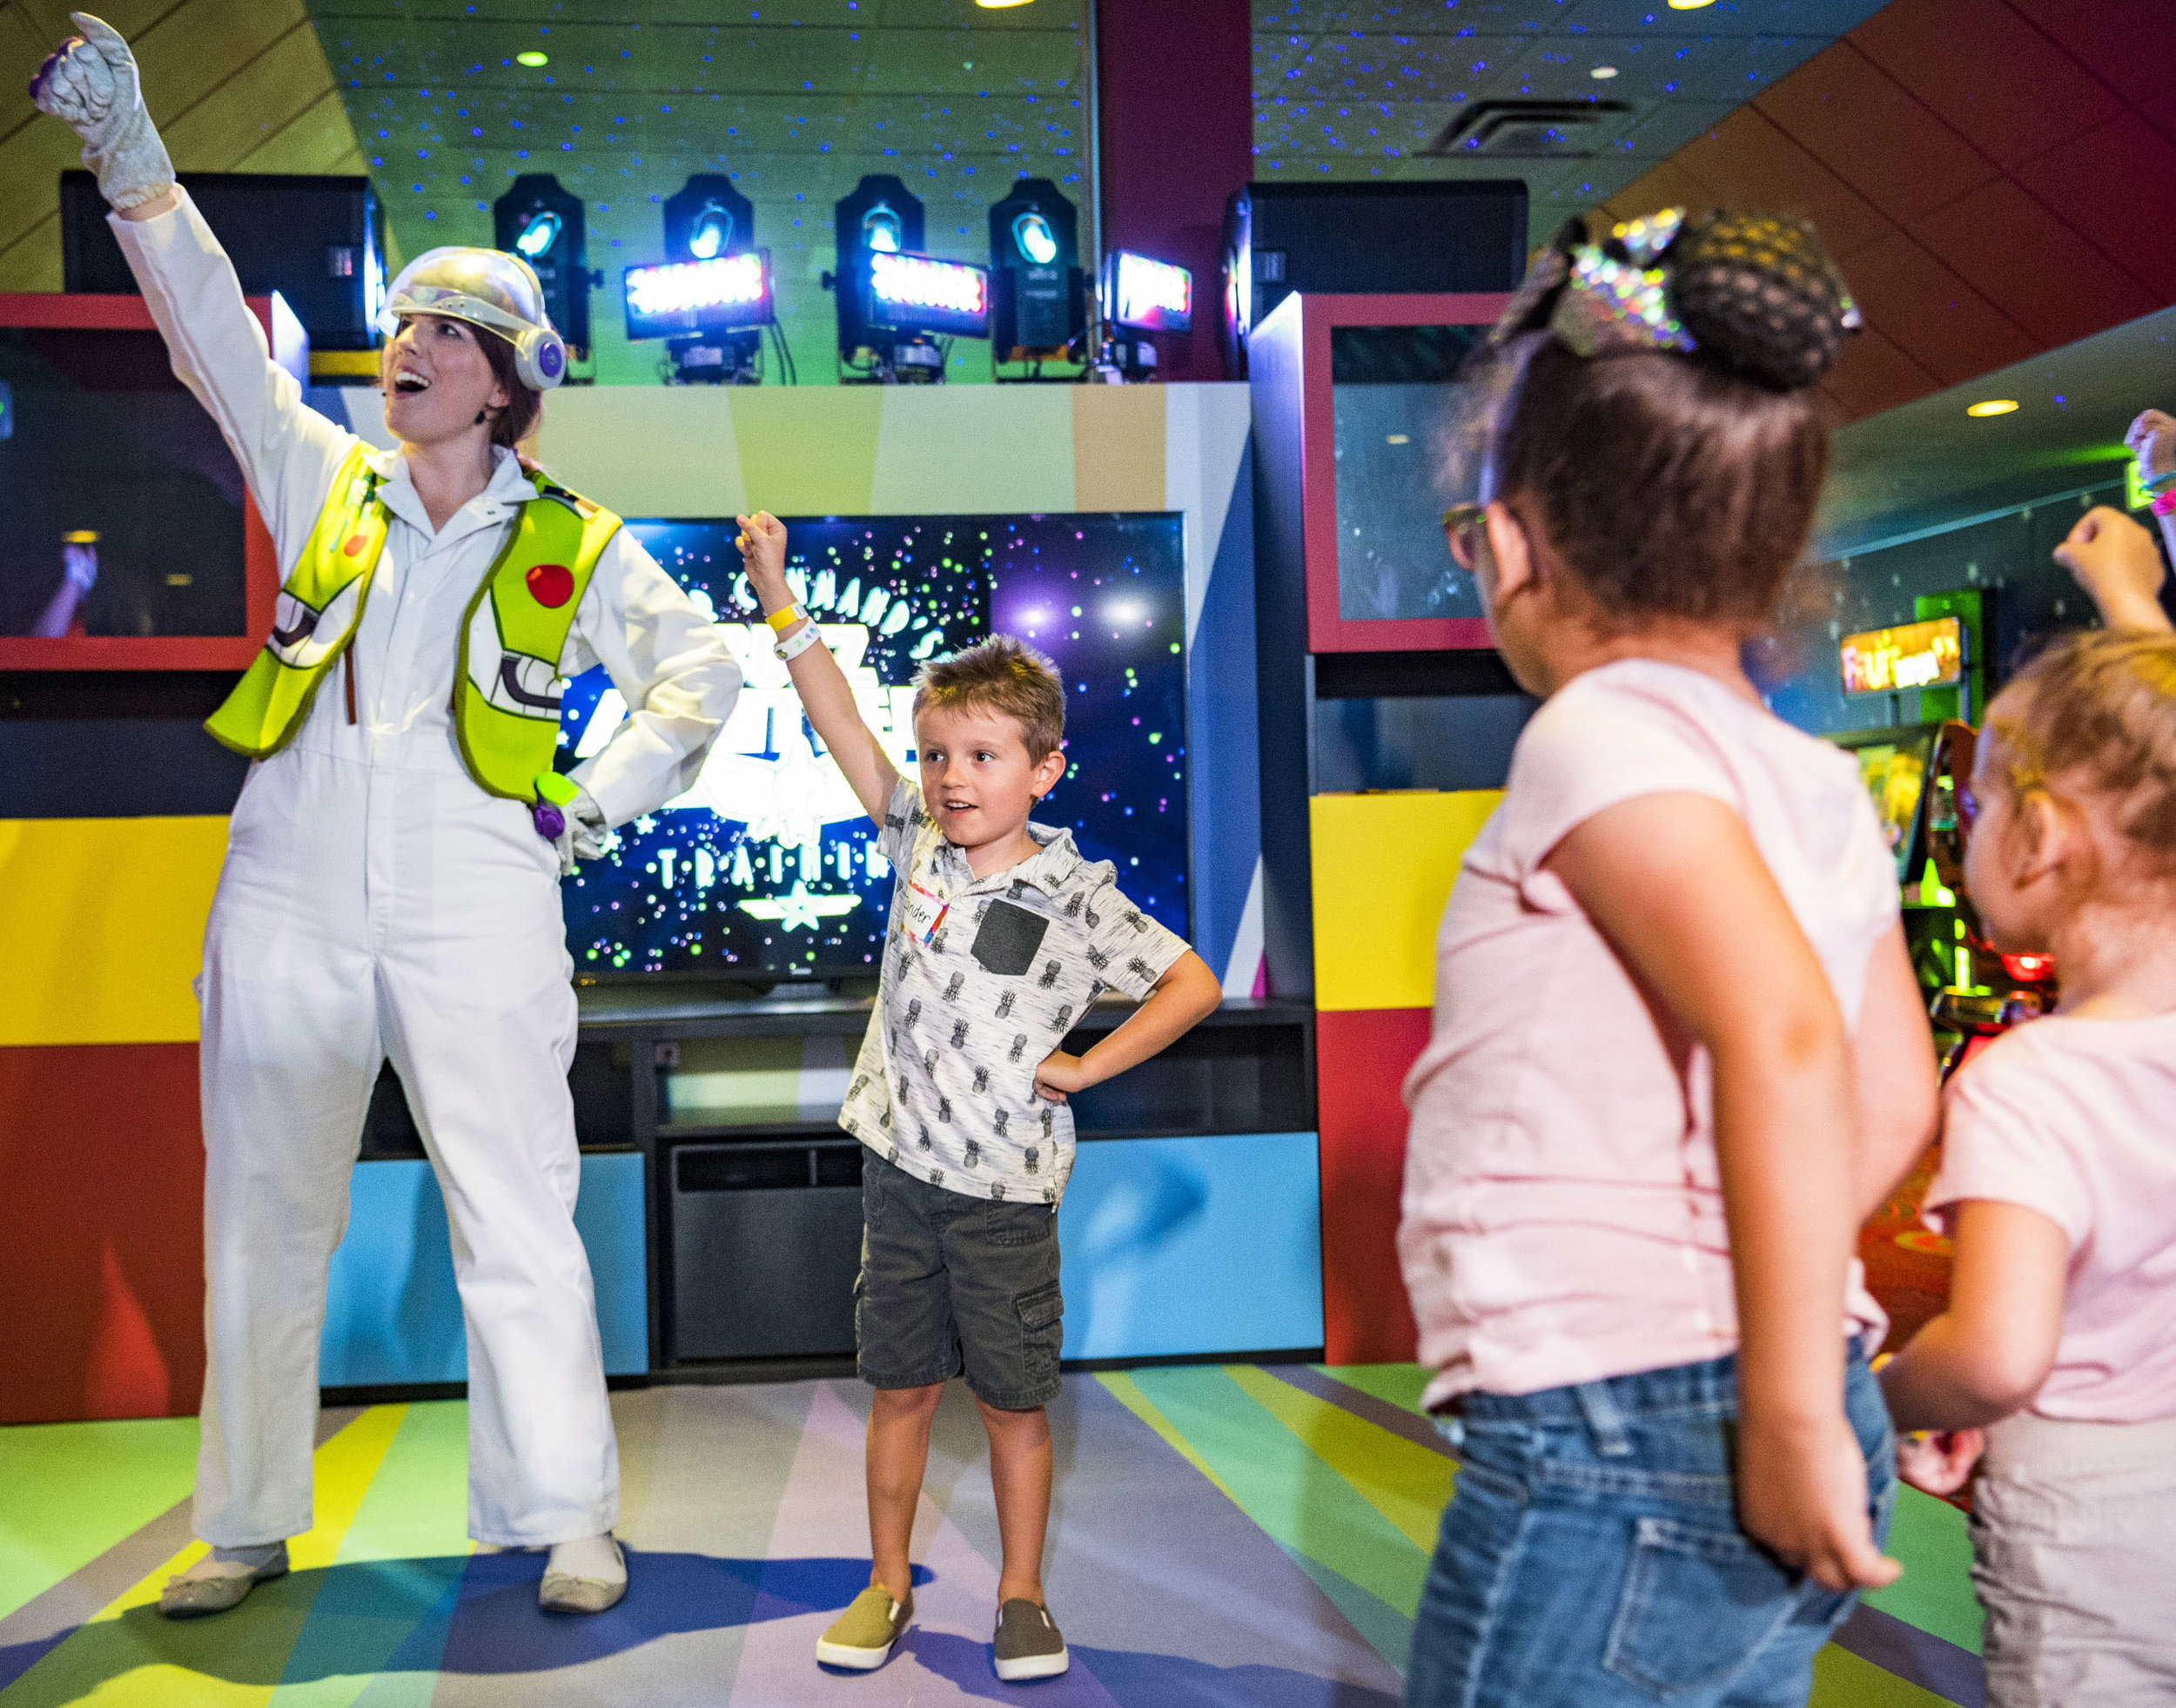 51+ Things to do at Walt Disney World [other than the Parks]